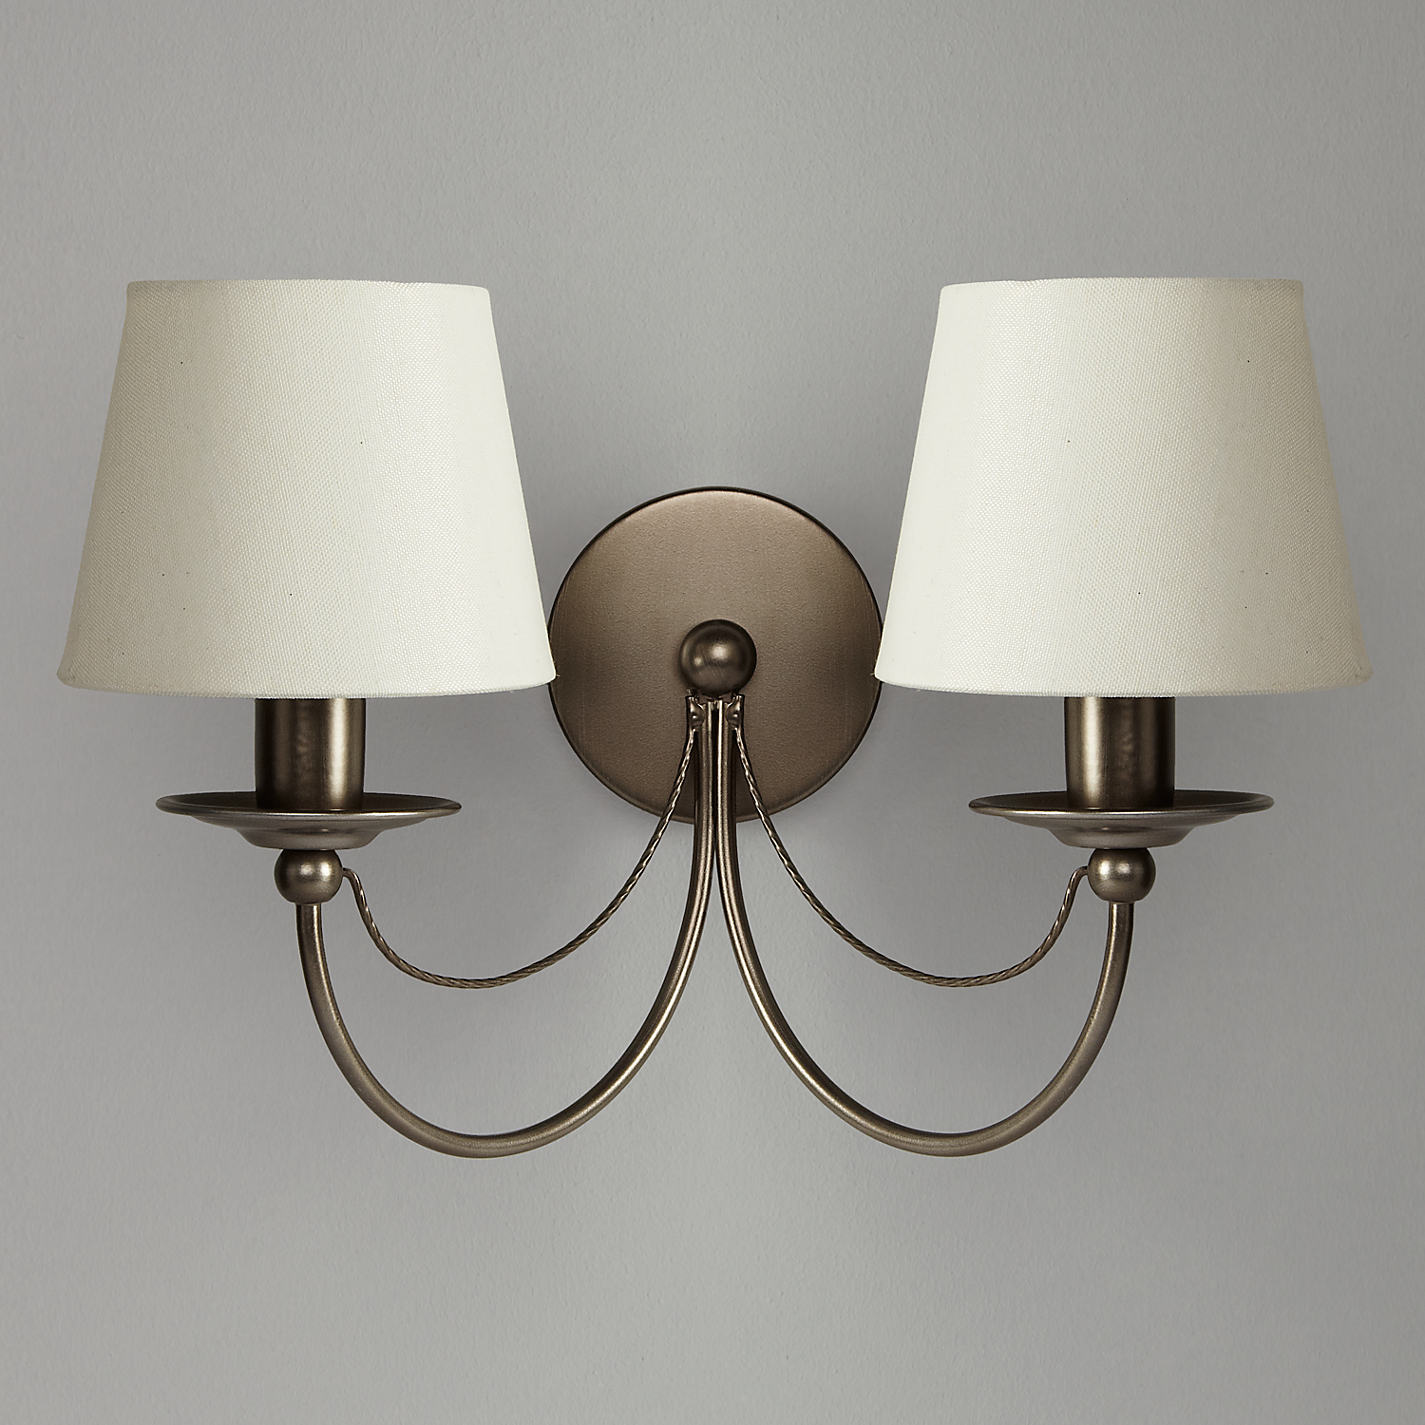 ... Buy John Lewis Mariana Fabric Shade Wall Light, 2 Arm Online at  johnlewis.com ...